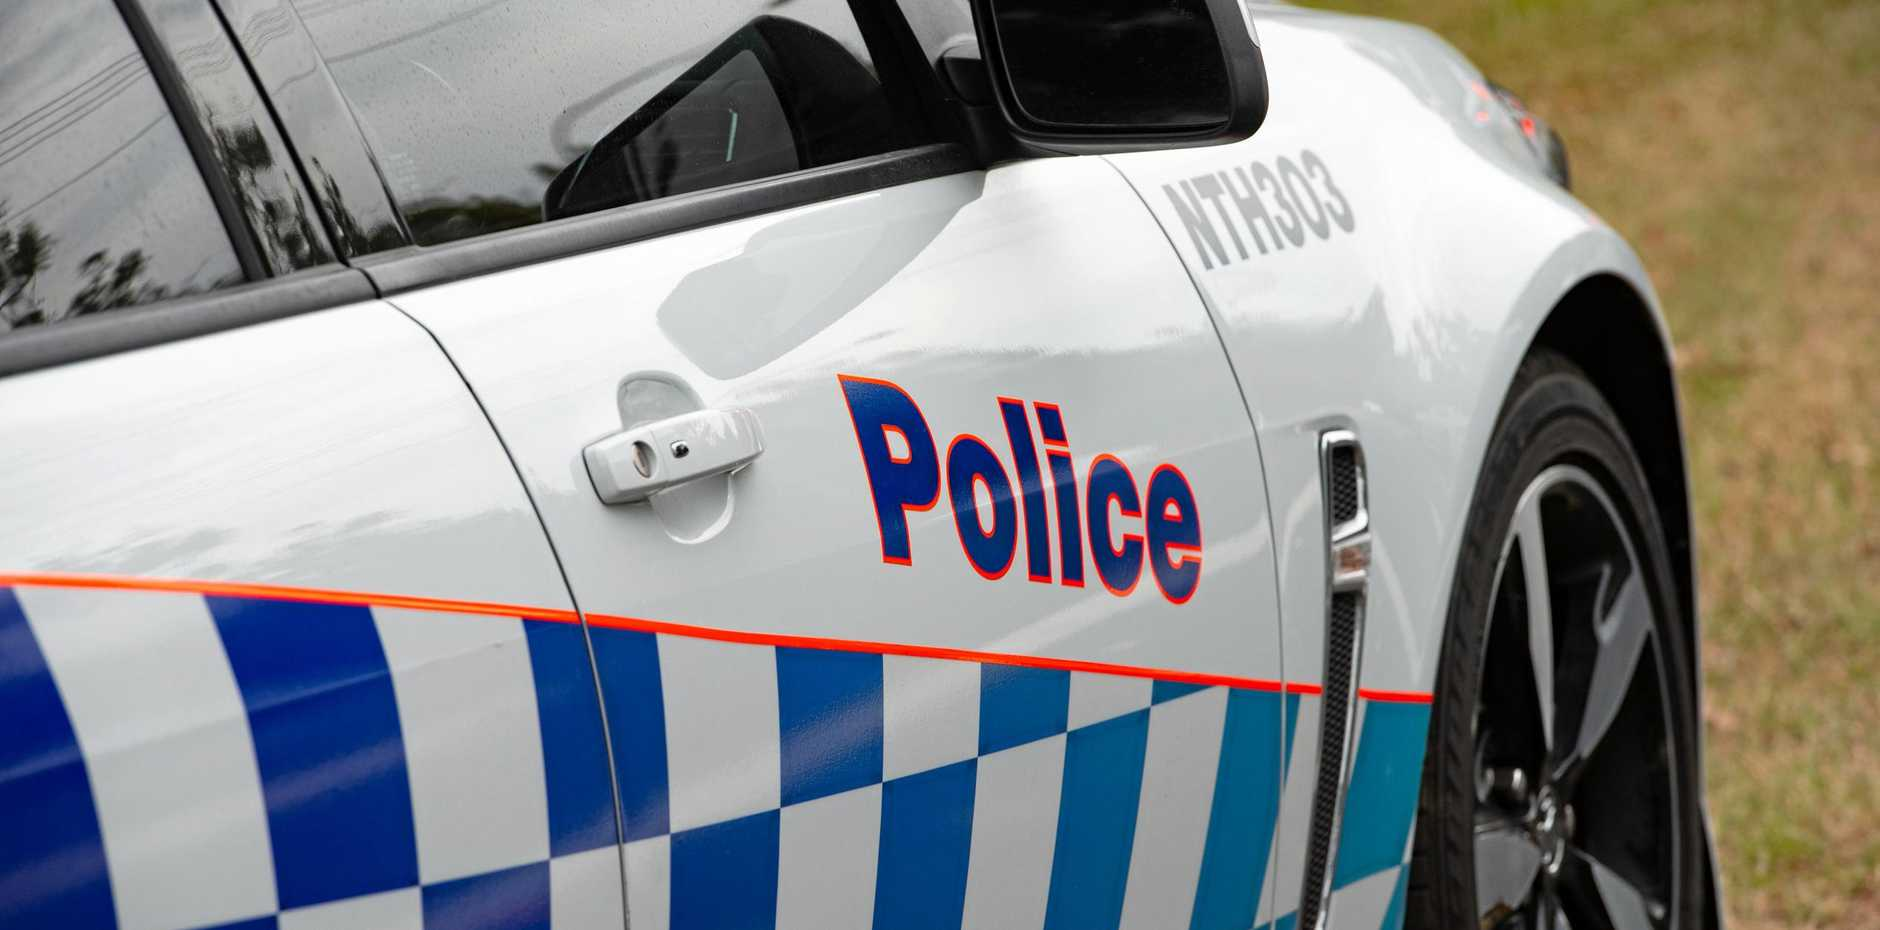 Two men were arrested for multiple offences.